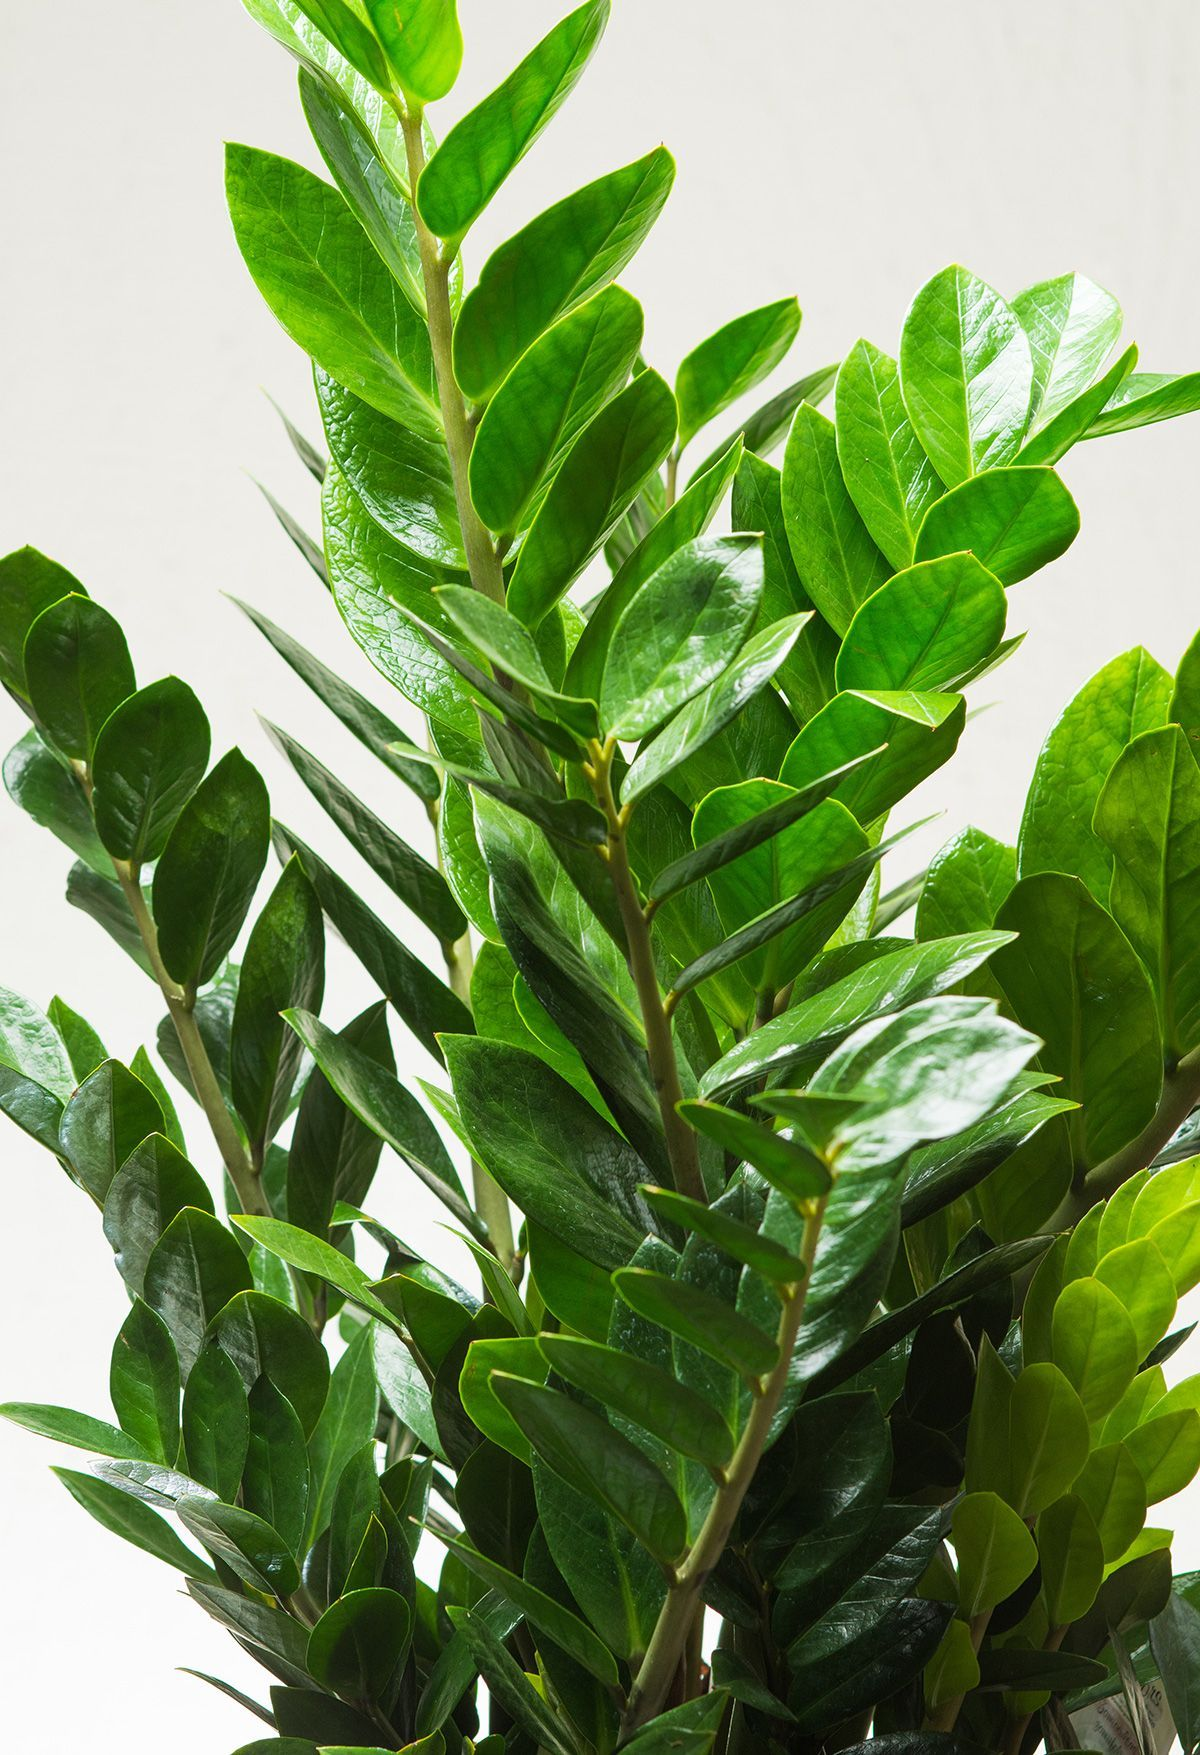 Zz Plant (Zamioculcas Zamiifolia) Practically Thrives On Neglect And Tolerates